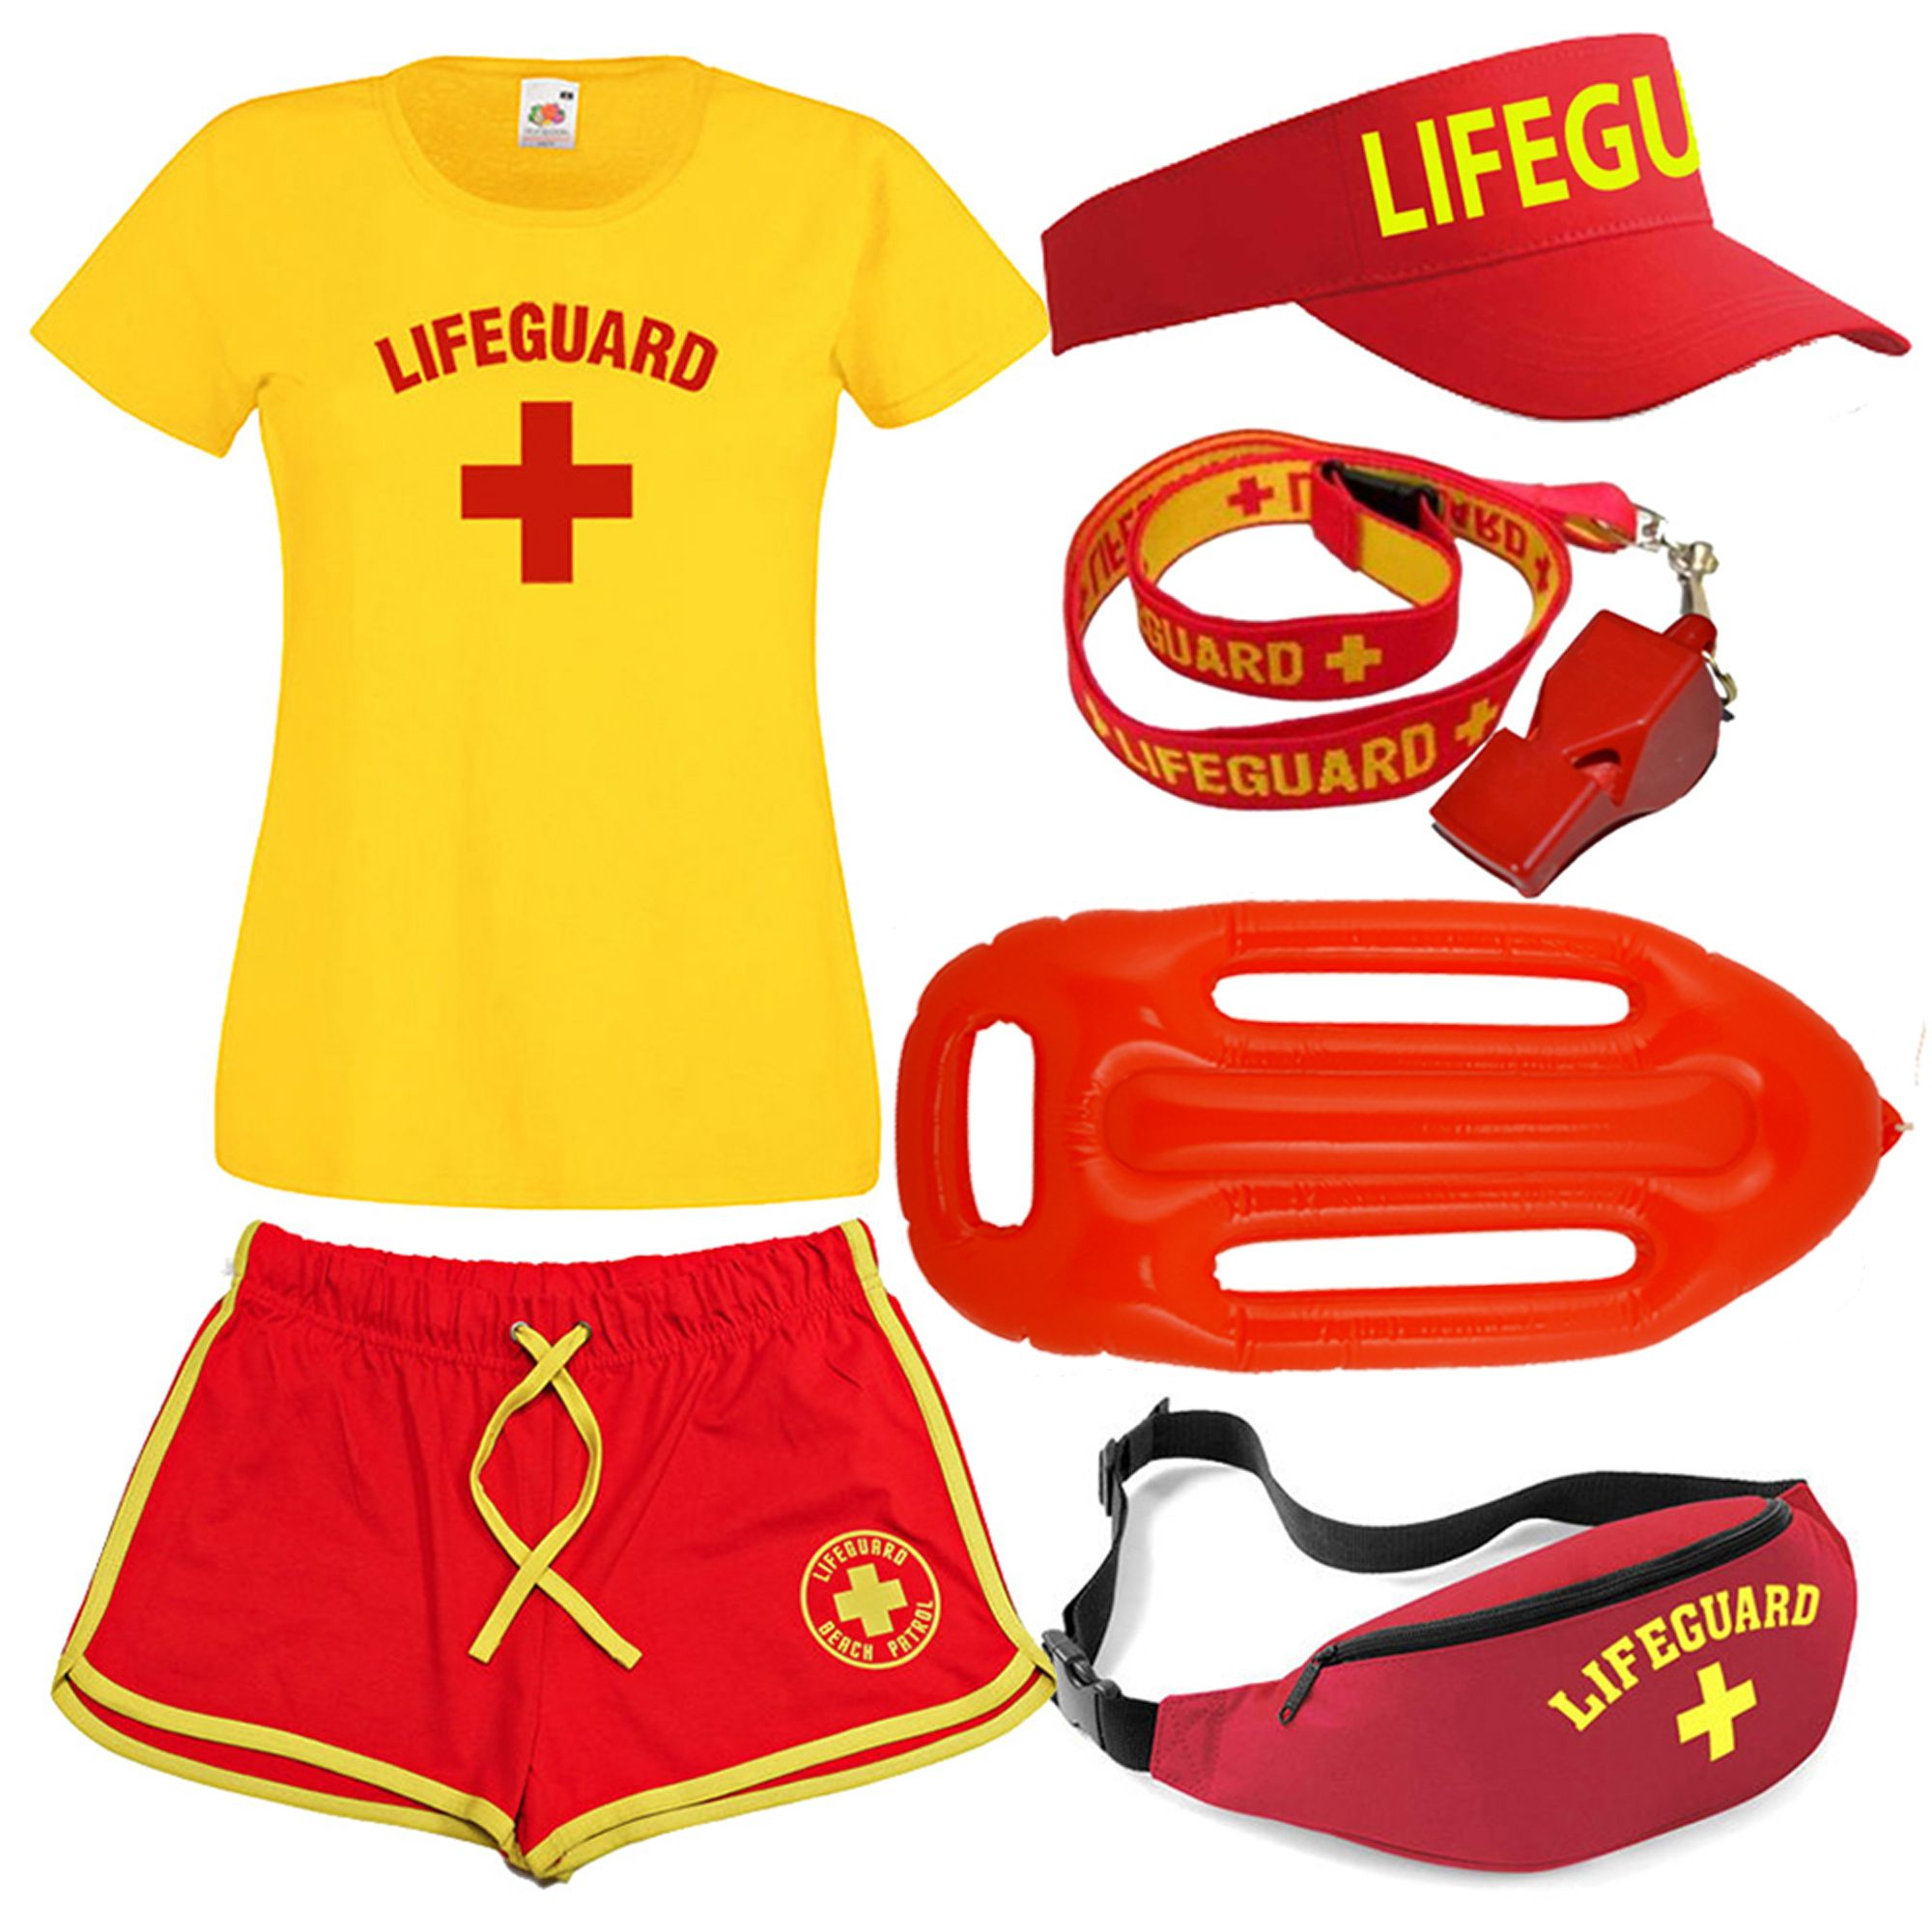 Licensed Baywatch Clothing, Lifeguard Fancy Dress | LifeguardGear